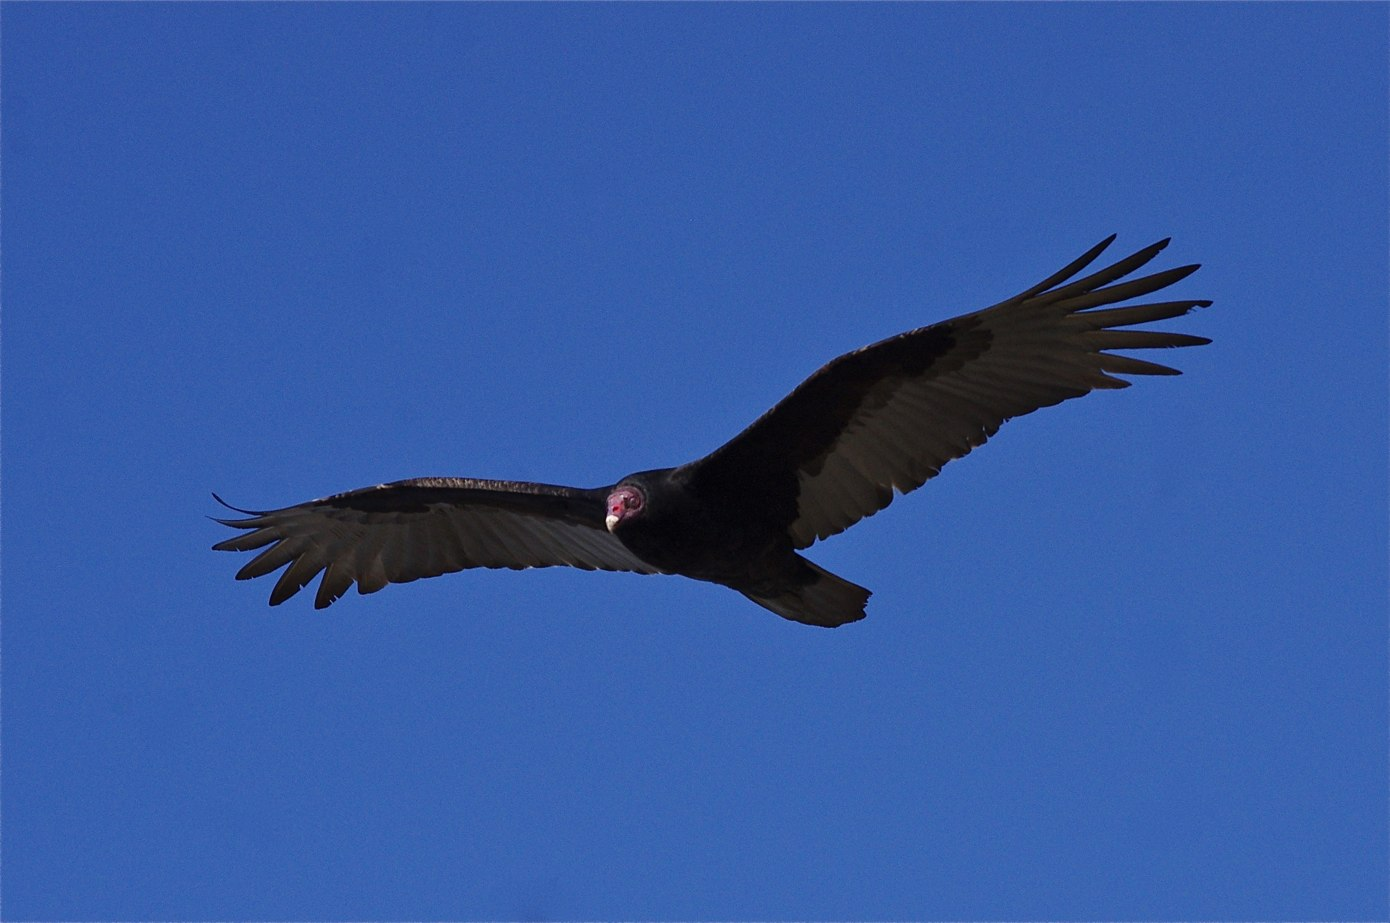 """- Turkey Vulture (Cathartes aura)Turkey Vultures live in mostly open areas, but also partially wooded areas. Their diet consists of dead animals, or carrion, and occasionally decaying plant matter. Unlike most birds, they have a good sense of smell in order to locate their food. Their wingspan can be 5.5-6 ft. and is characterized by a wobbly """"V"""" when soaring. They are 2-3 ft. tall and weigh about 4.4 lbs. Turkey Vultures do not have vocal chords, so they do not have any distinct calls besides rare hisses made when threatened. They are protected on the US Migratory Bird list.Photo Credits: David Merrett"""